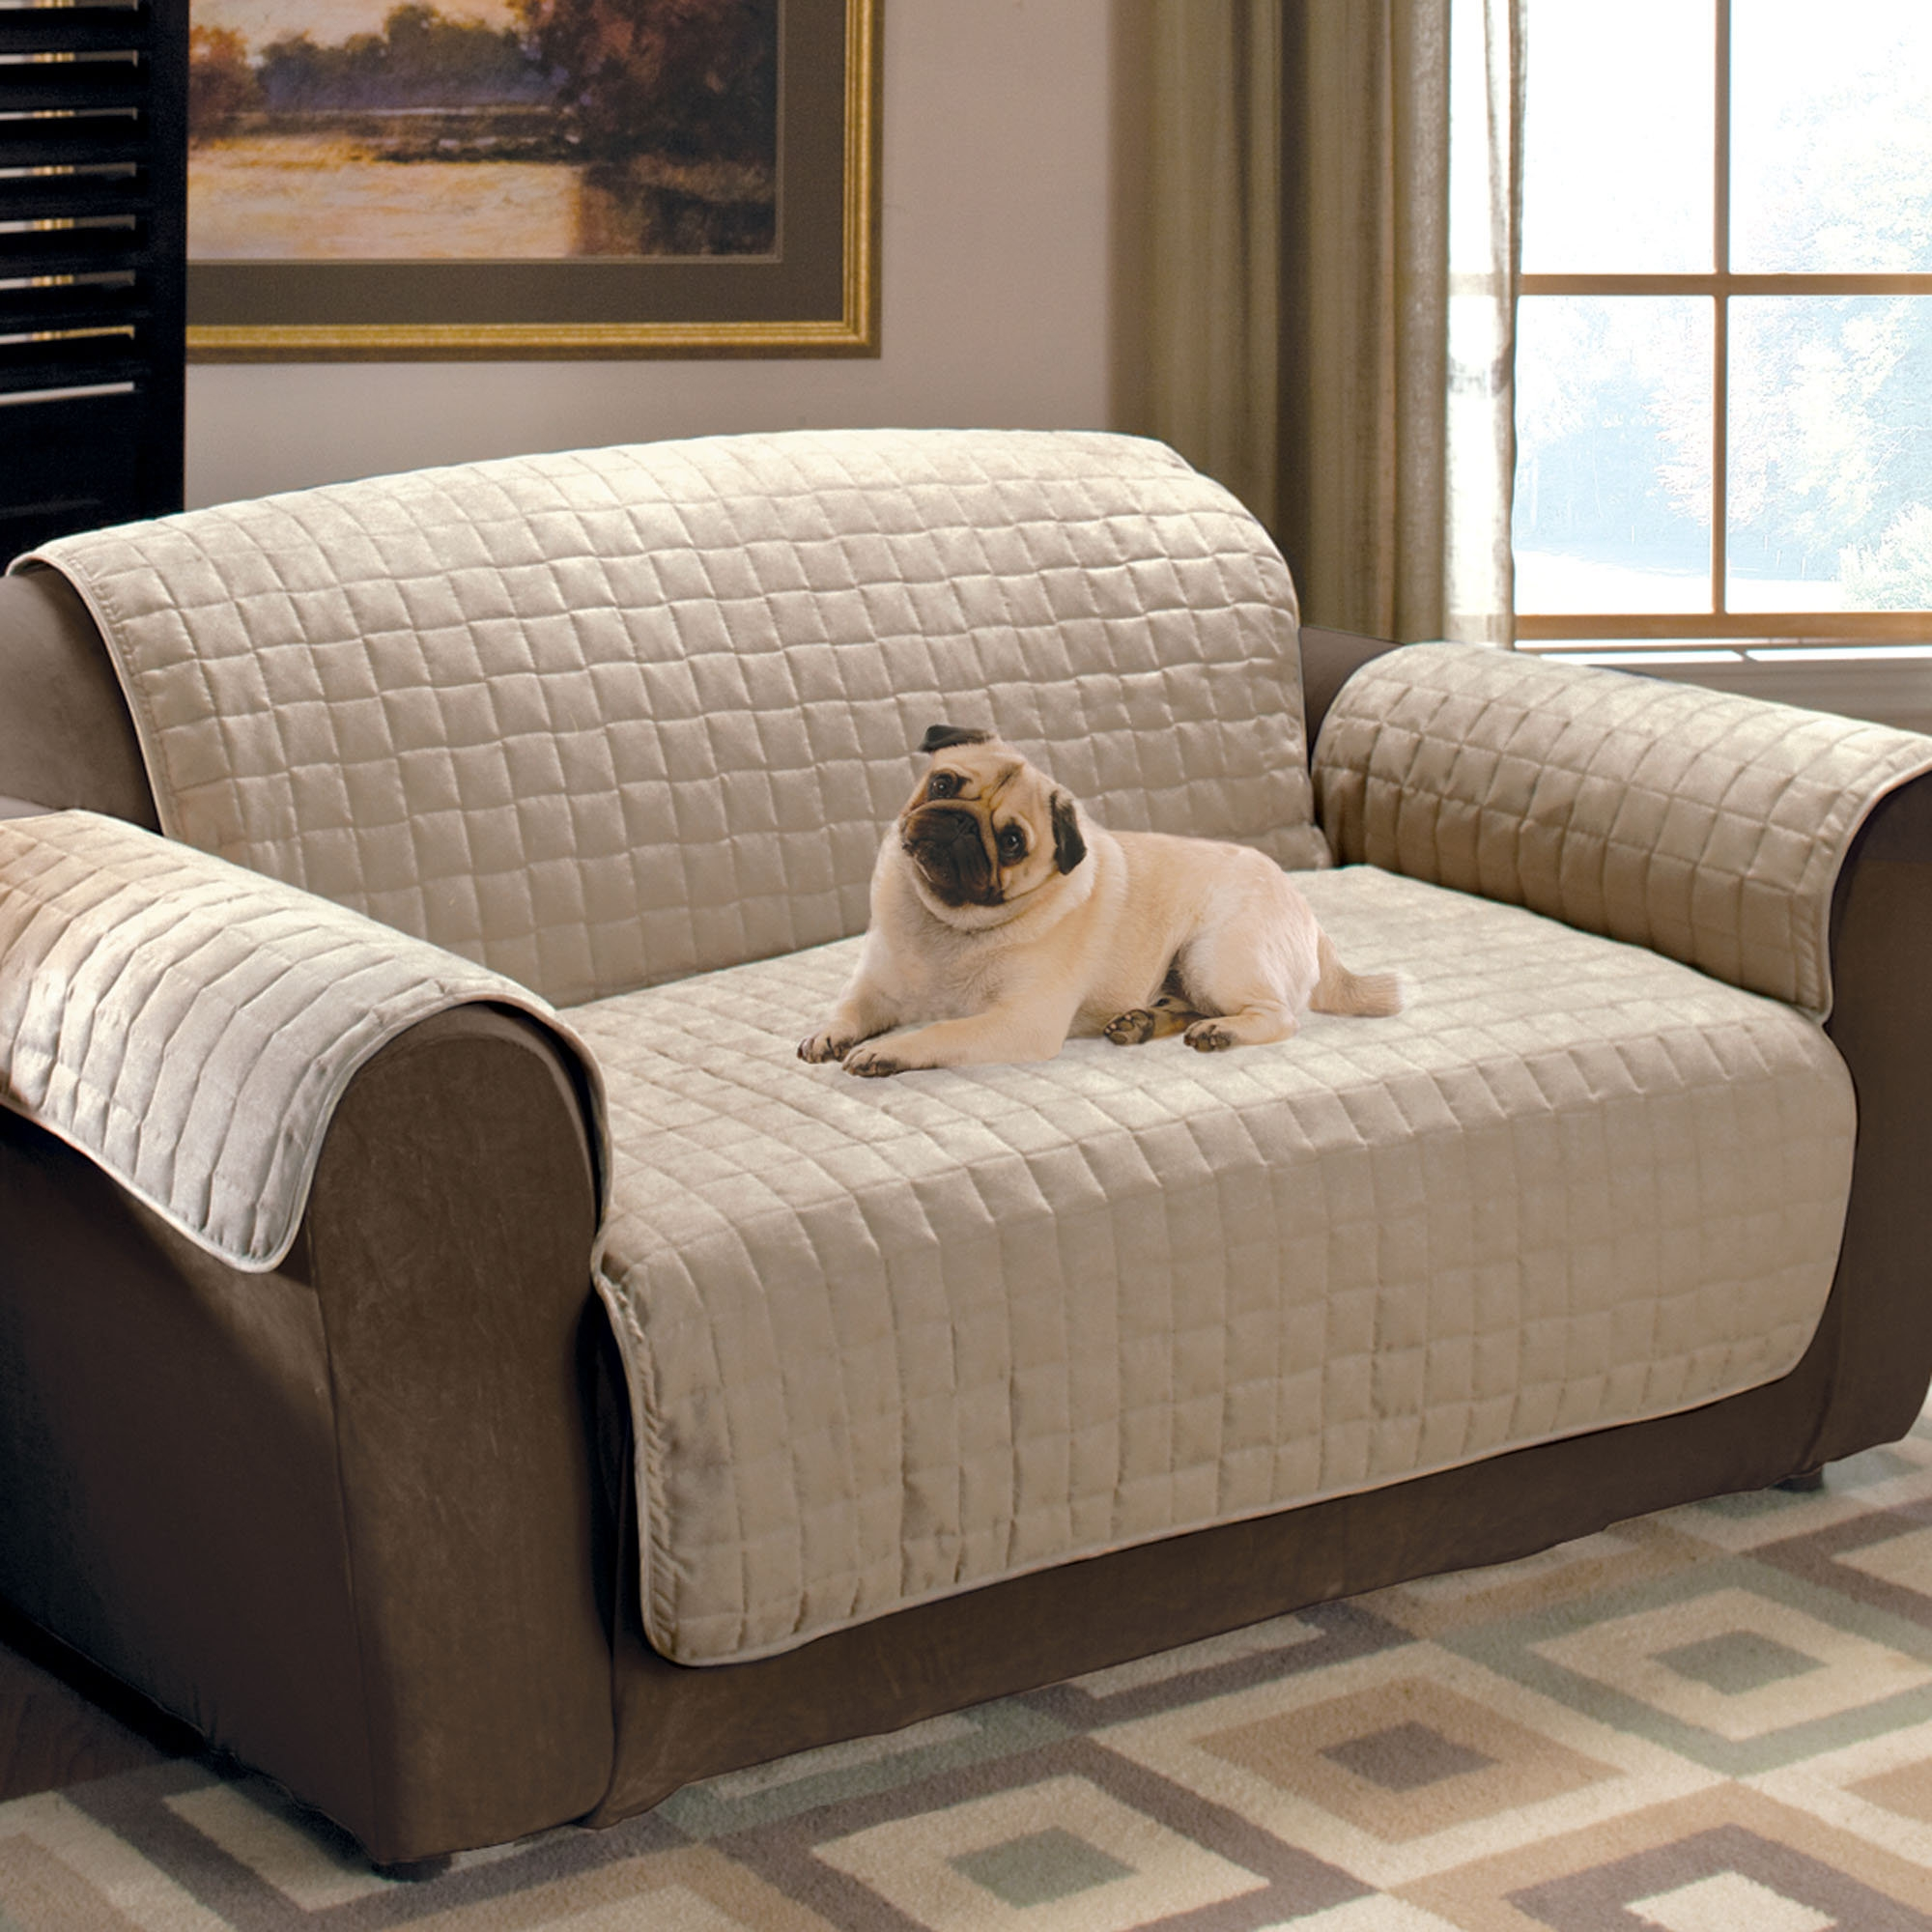 Cover For Sofas Home Style And Comfortable Pertaining To Covers For Sofas (Image 4 of 15)